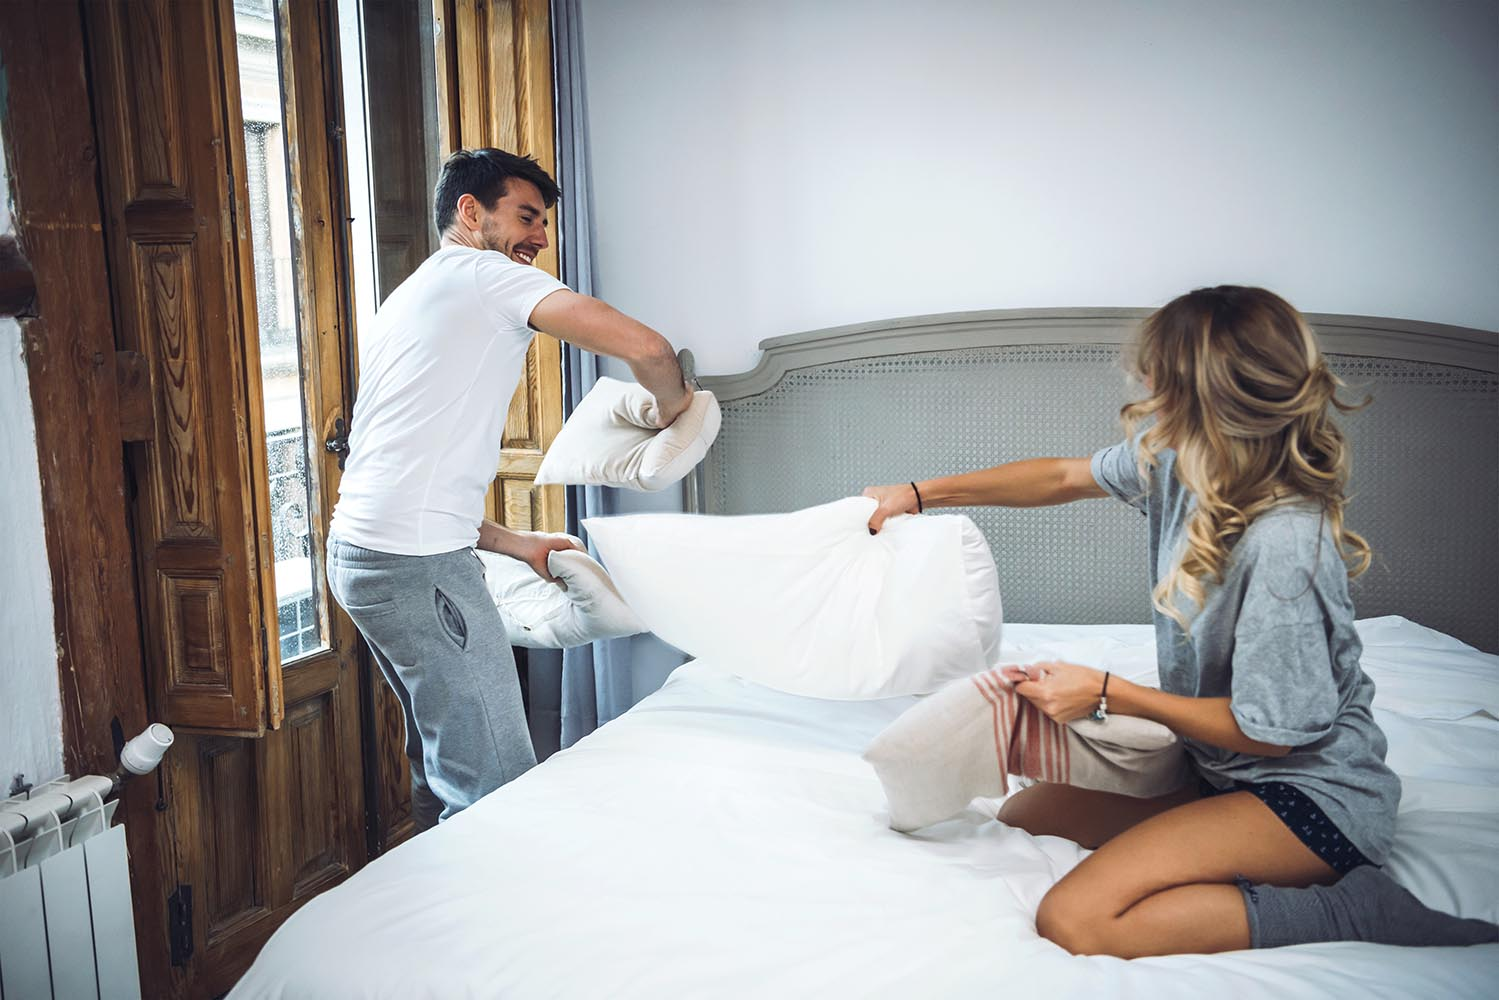 Charming couple pillow fighting